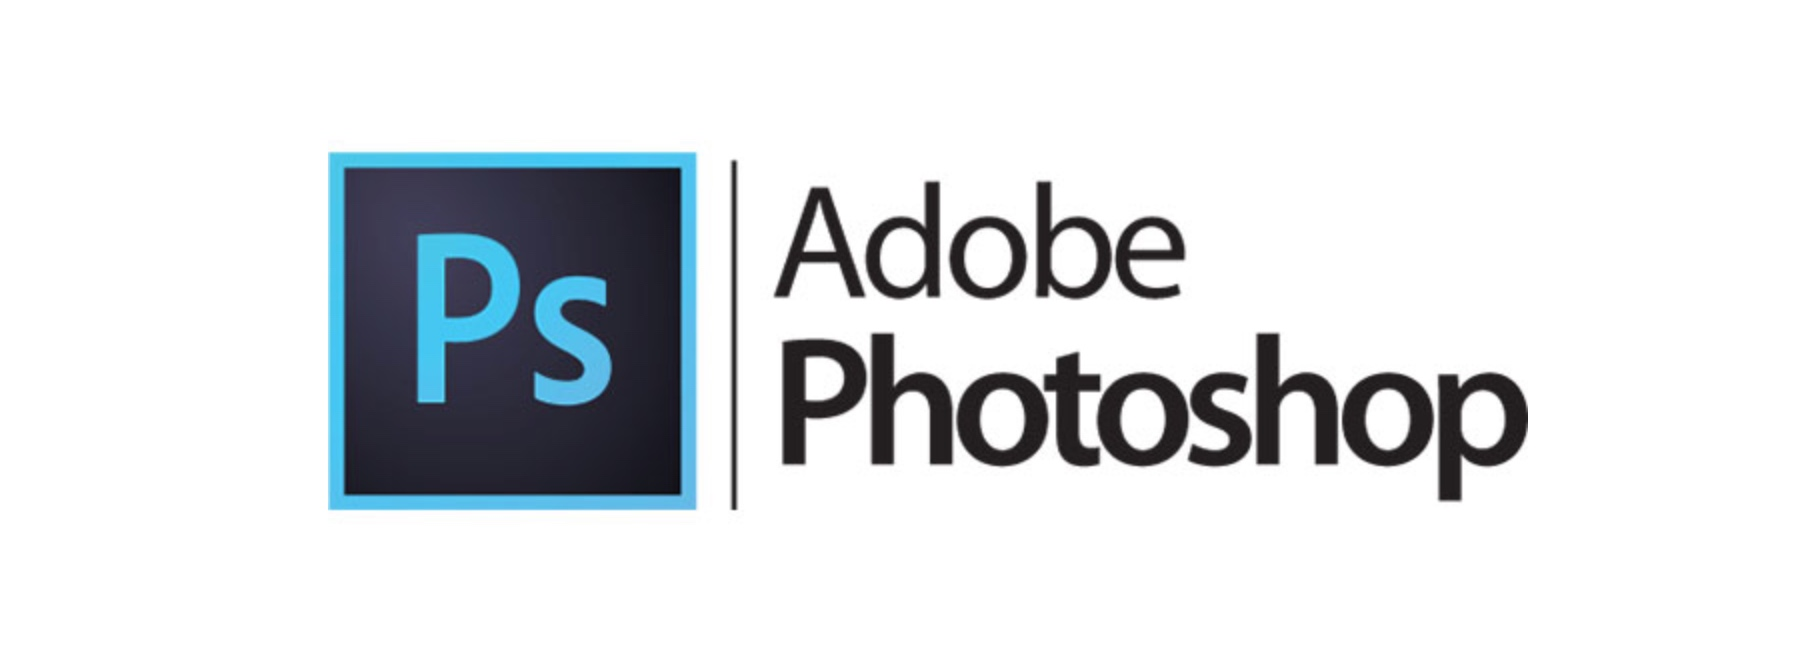 Adobe Photoshop CC 2020 Crack + Torrent With Serial Number{Upgraded}